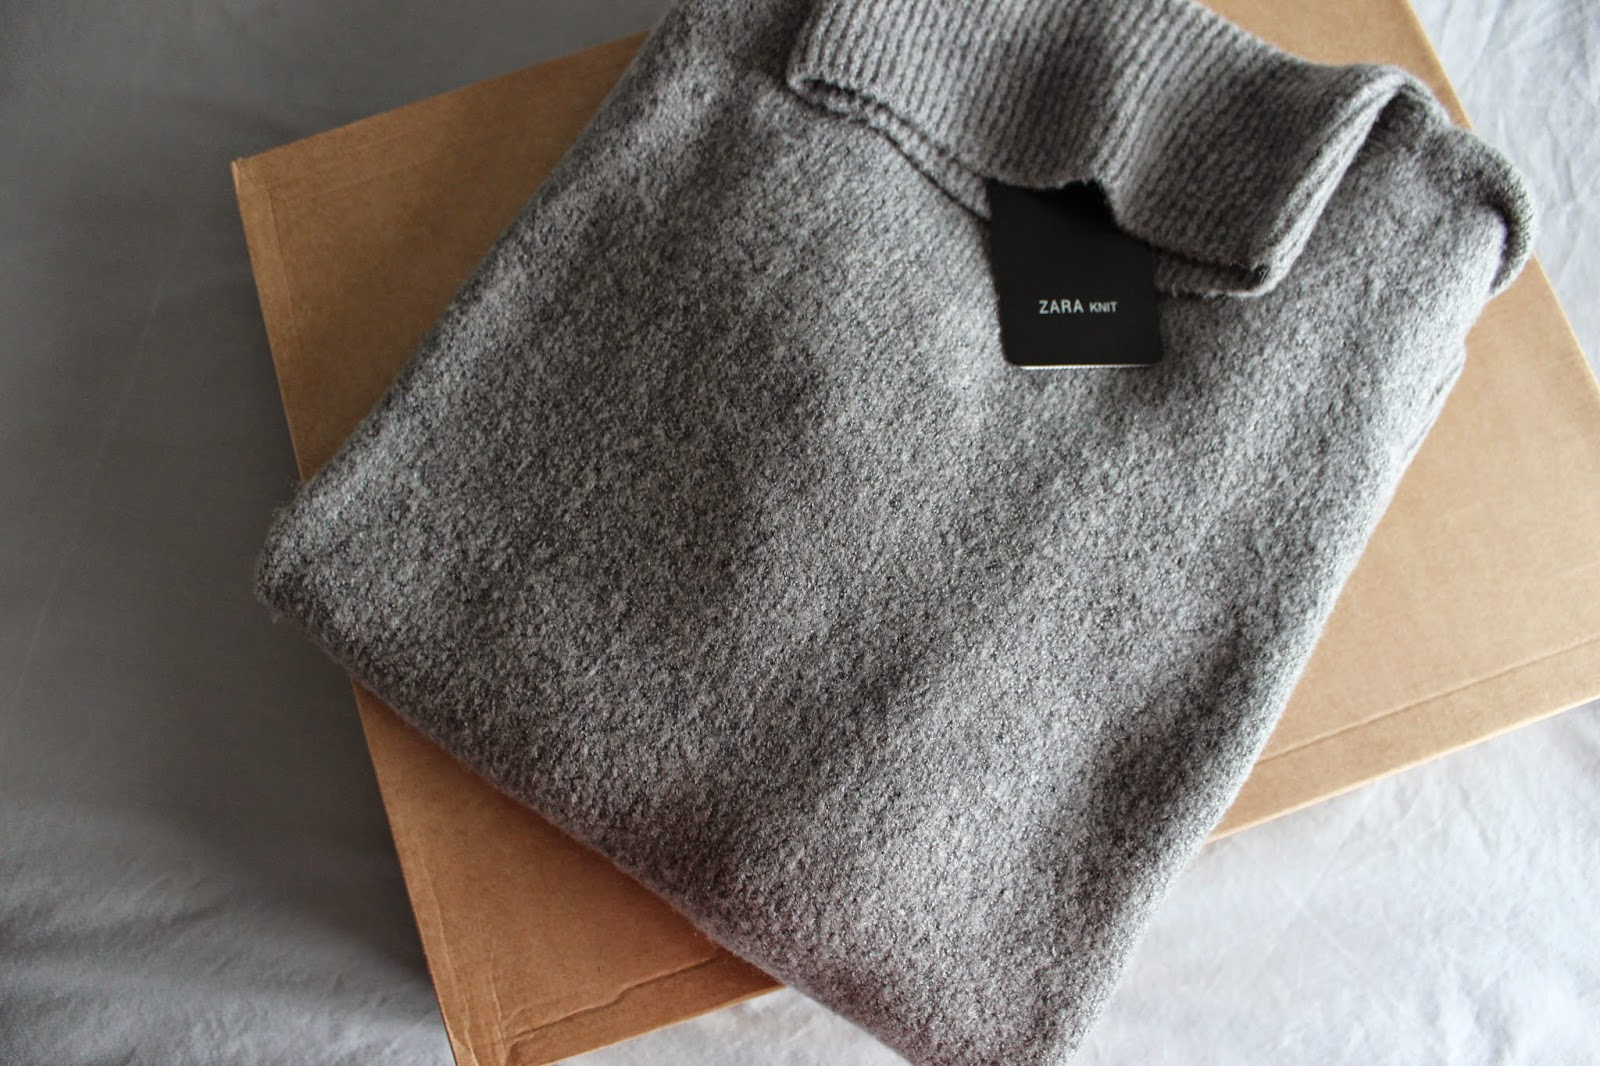 Zara High Neck Sweater Biscuit 71